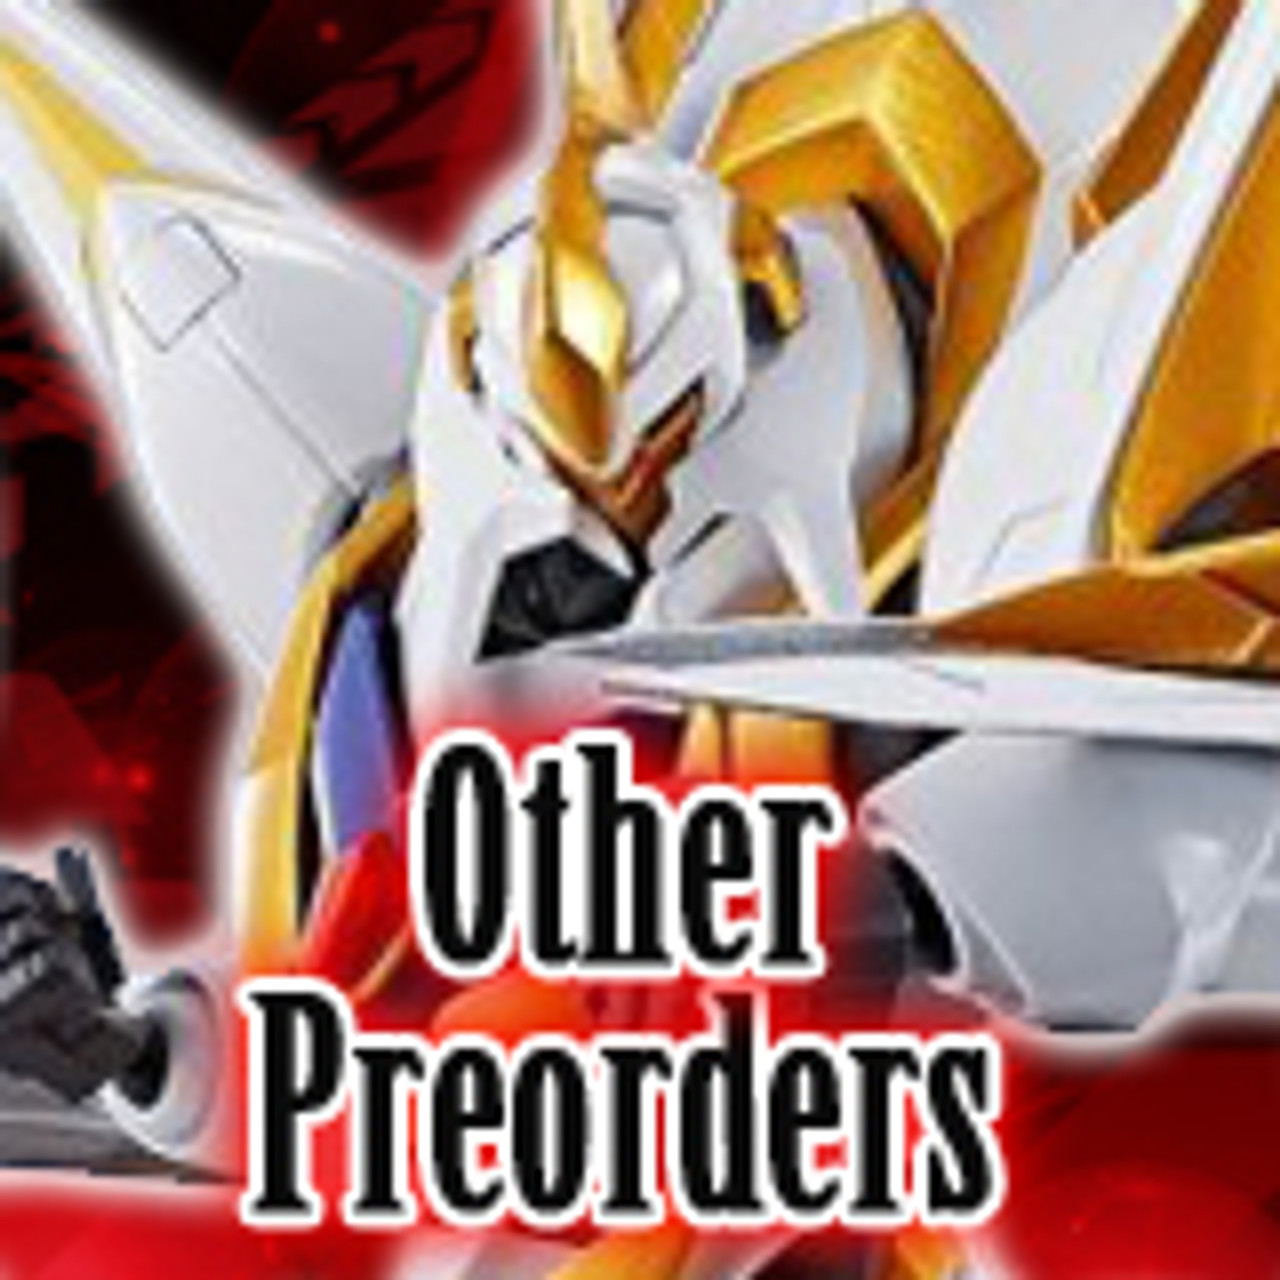 Other Preorders